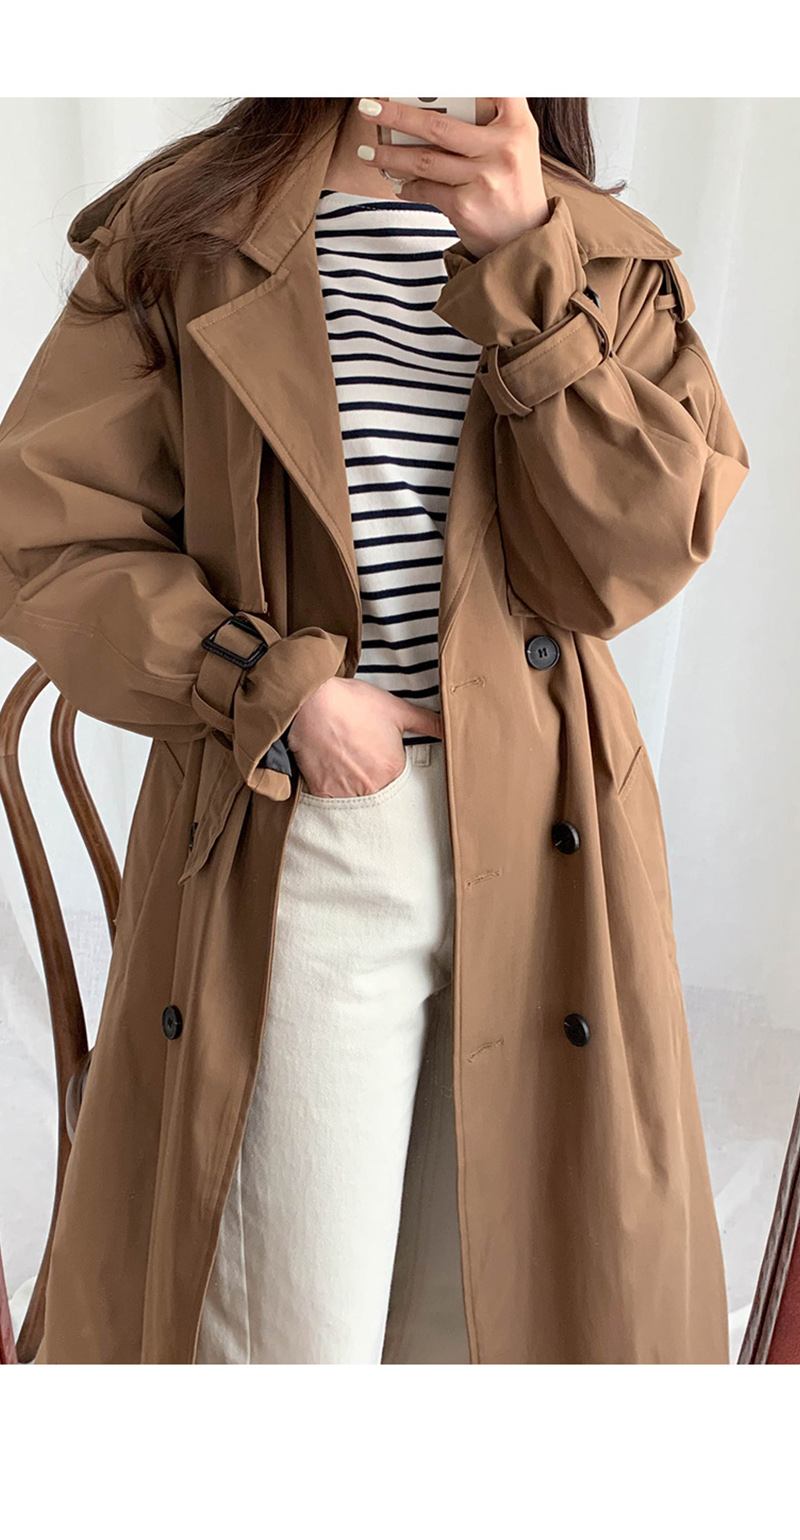 19 New Autumn Winter Women's Coat Korean Windbreaker Female Plus Size Double Breasted Ladies Long Chic Trench Coats 5